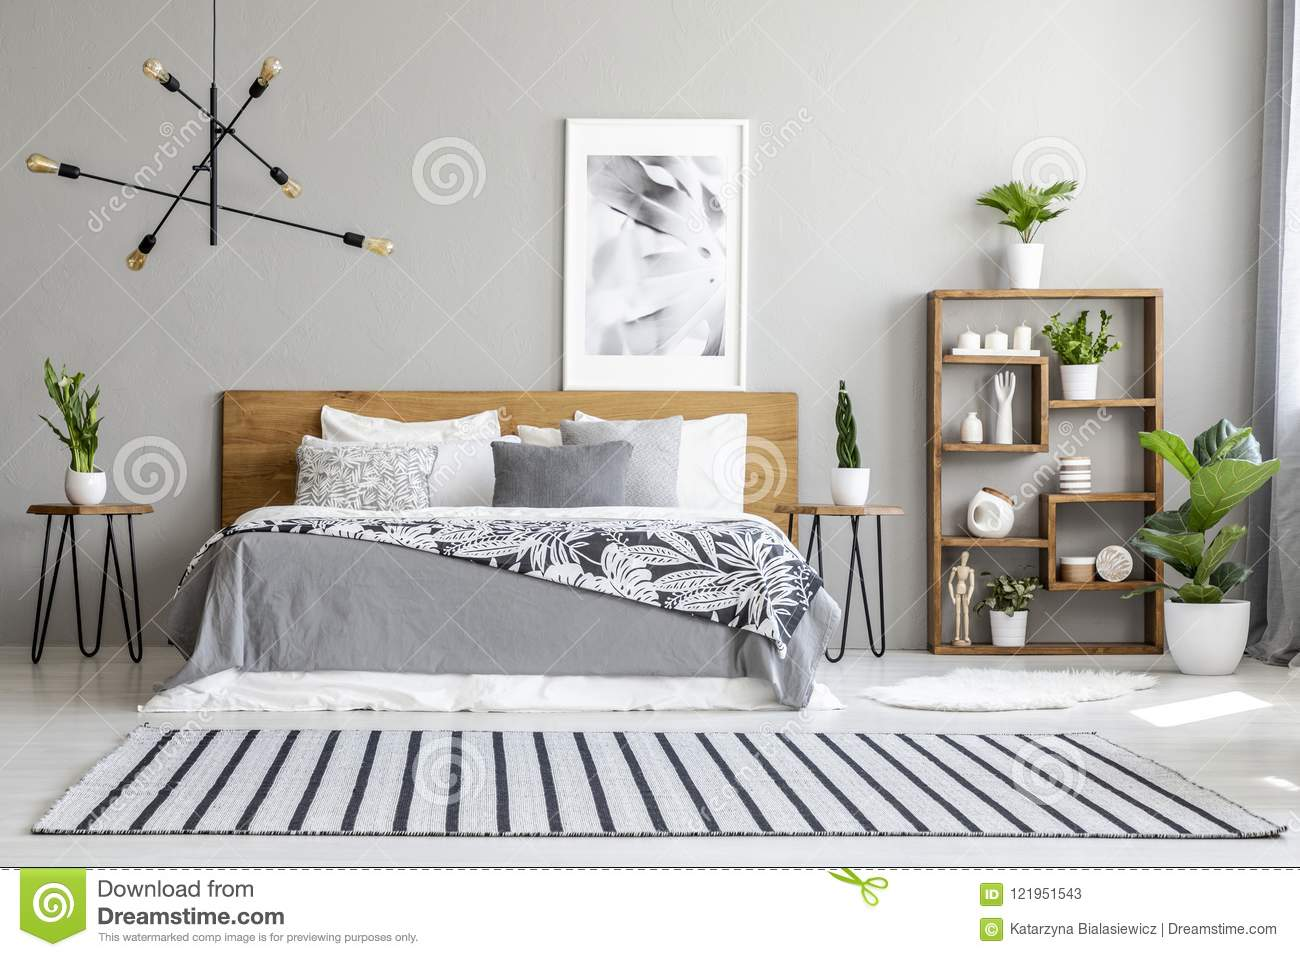 Striped carpet near bed with patterned blanket in bedroom interi